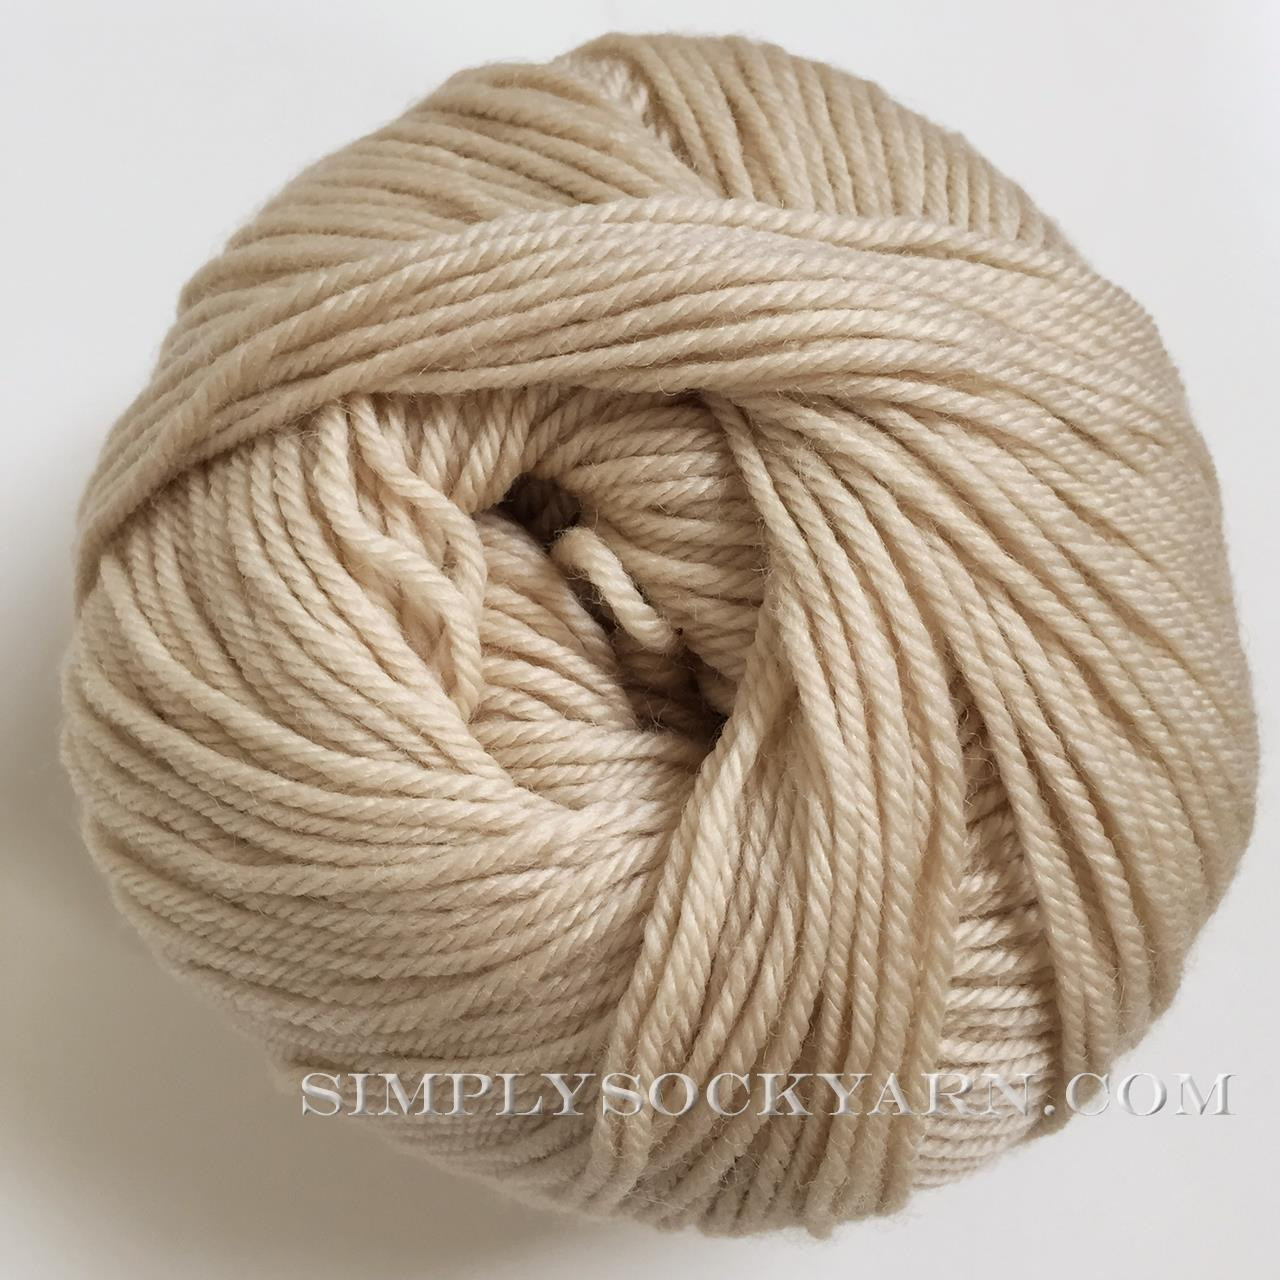 CY 220 SW 228 Frosted Almond